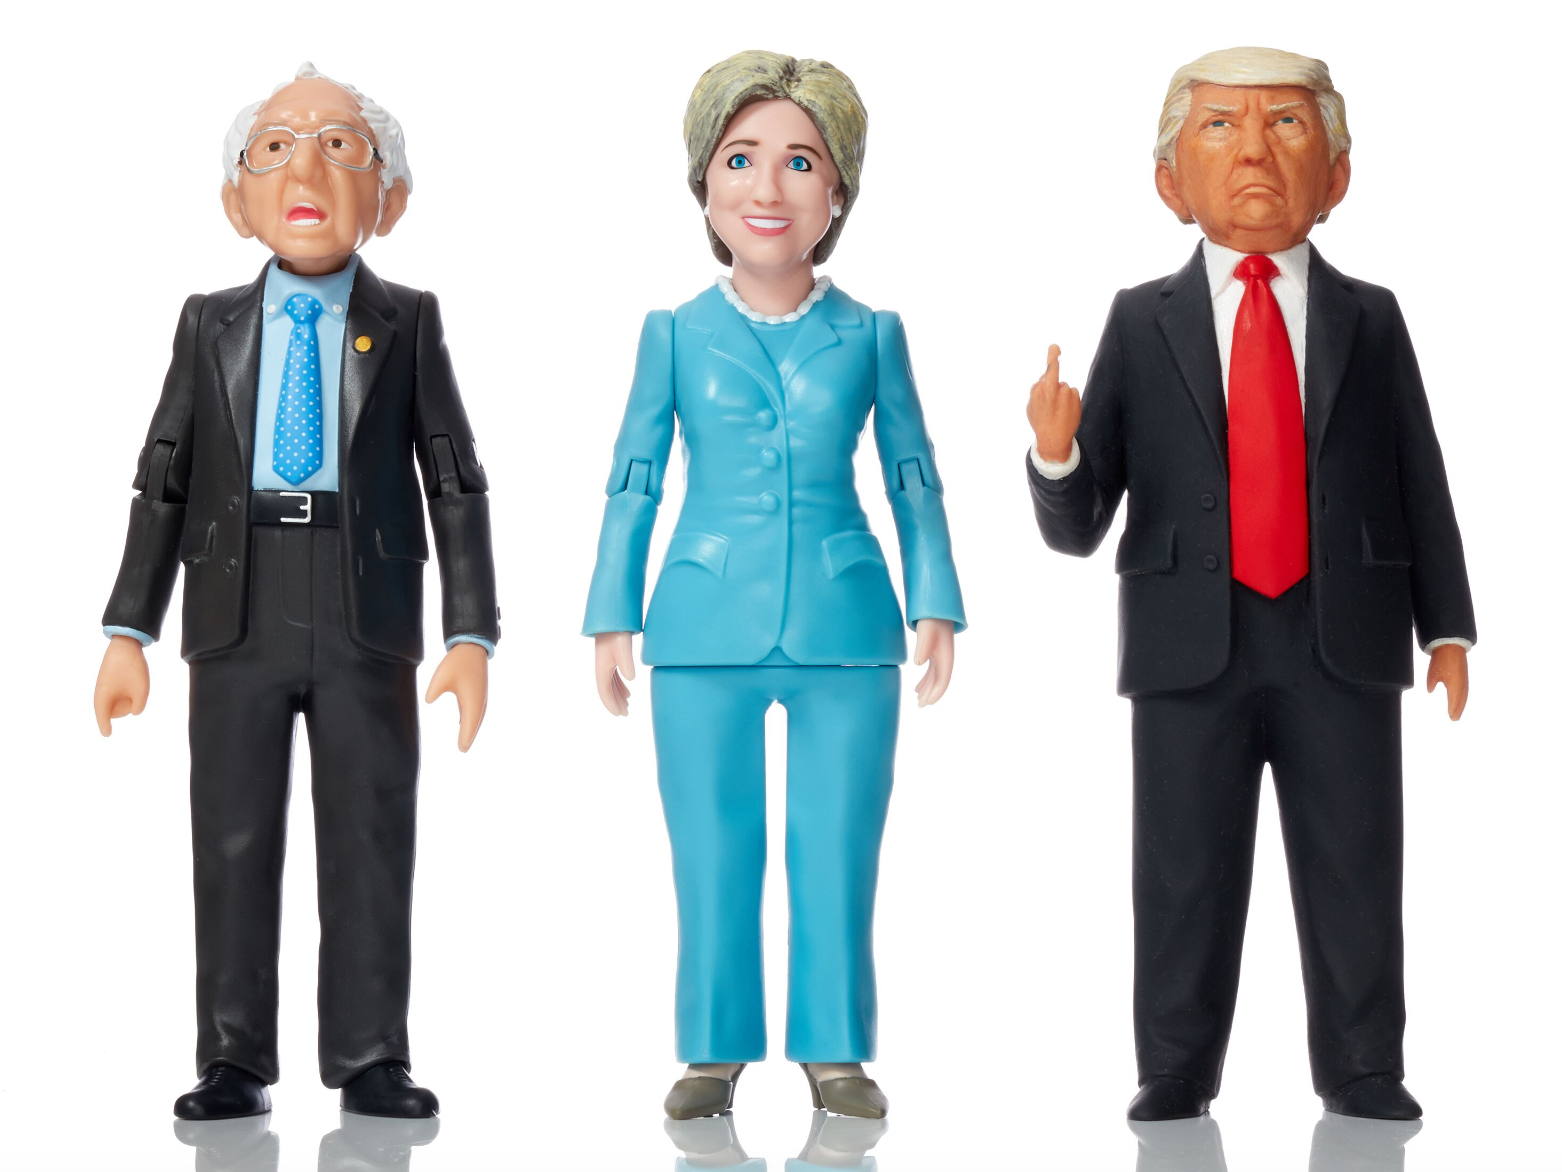 The FCTRY figurines of Bernie Sanders, Hillary Clinton and Donald Trump.